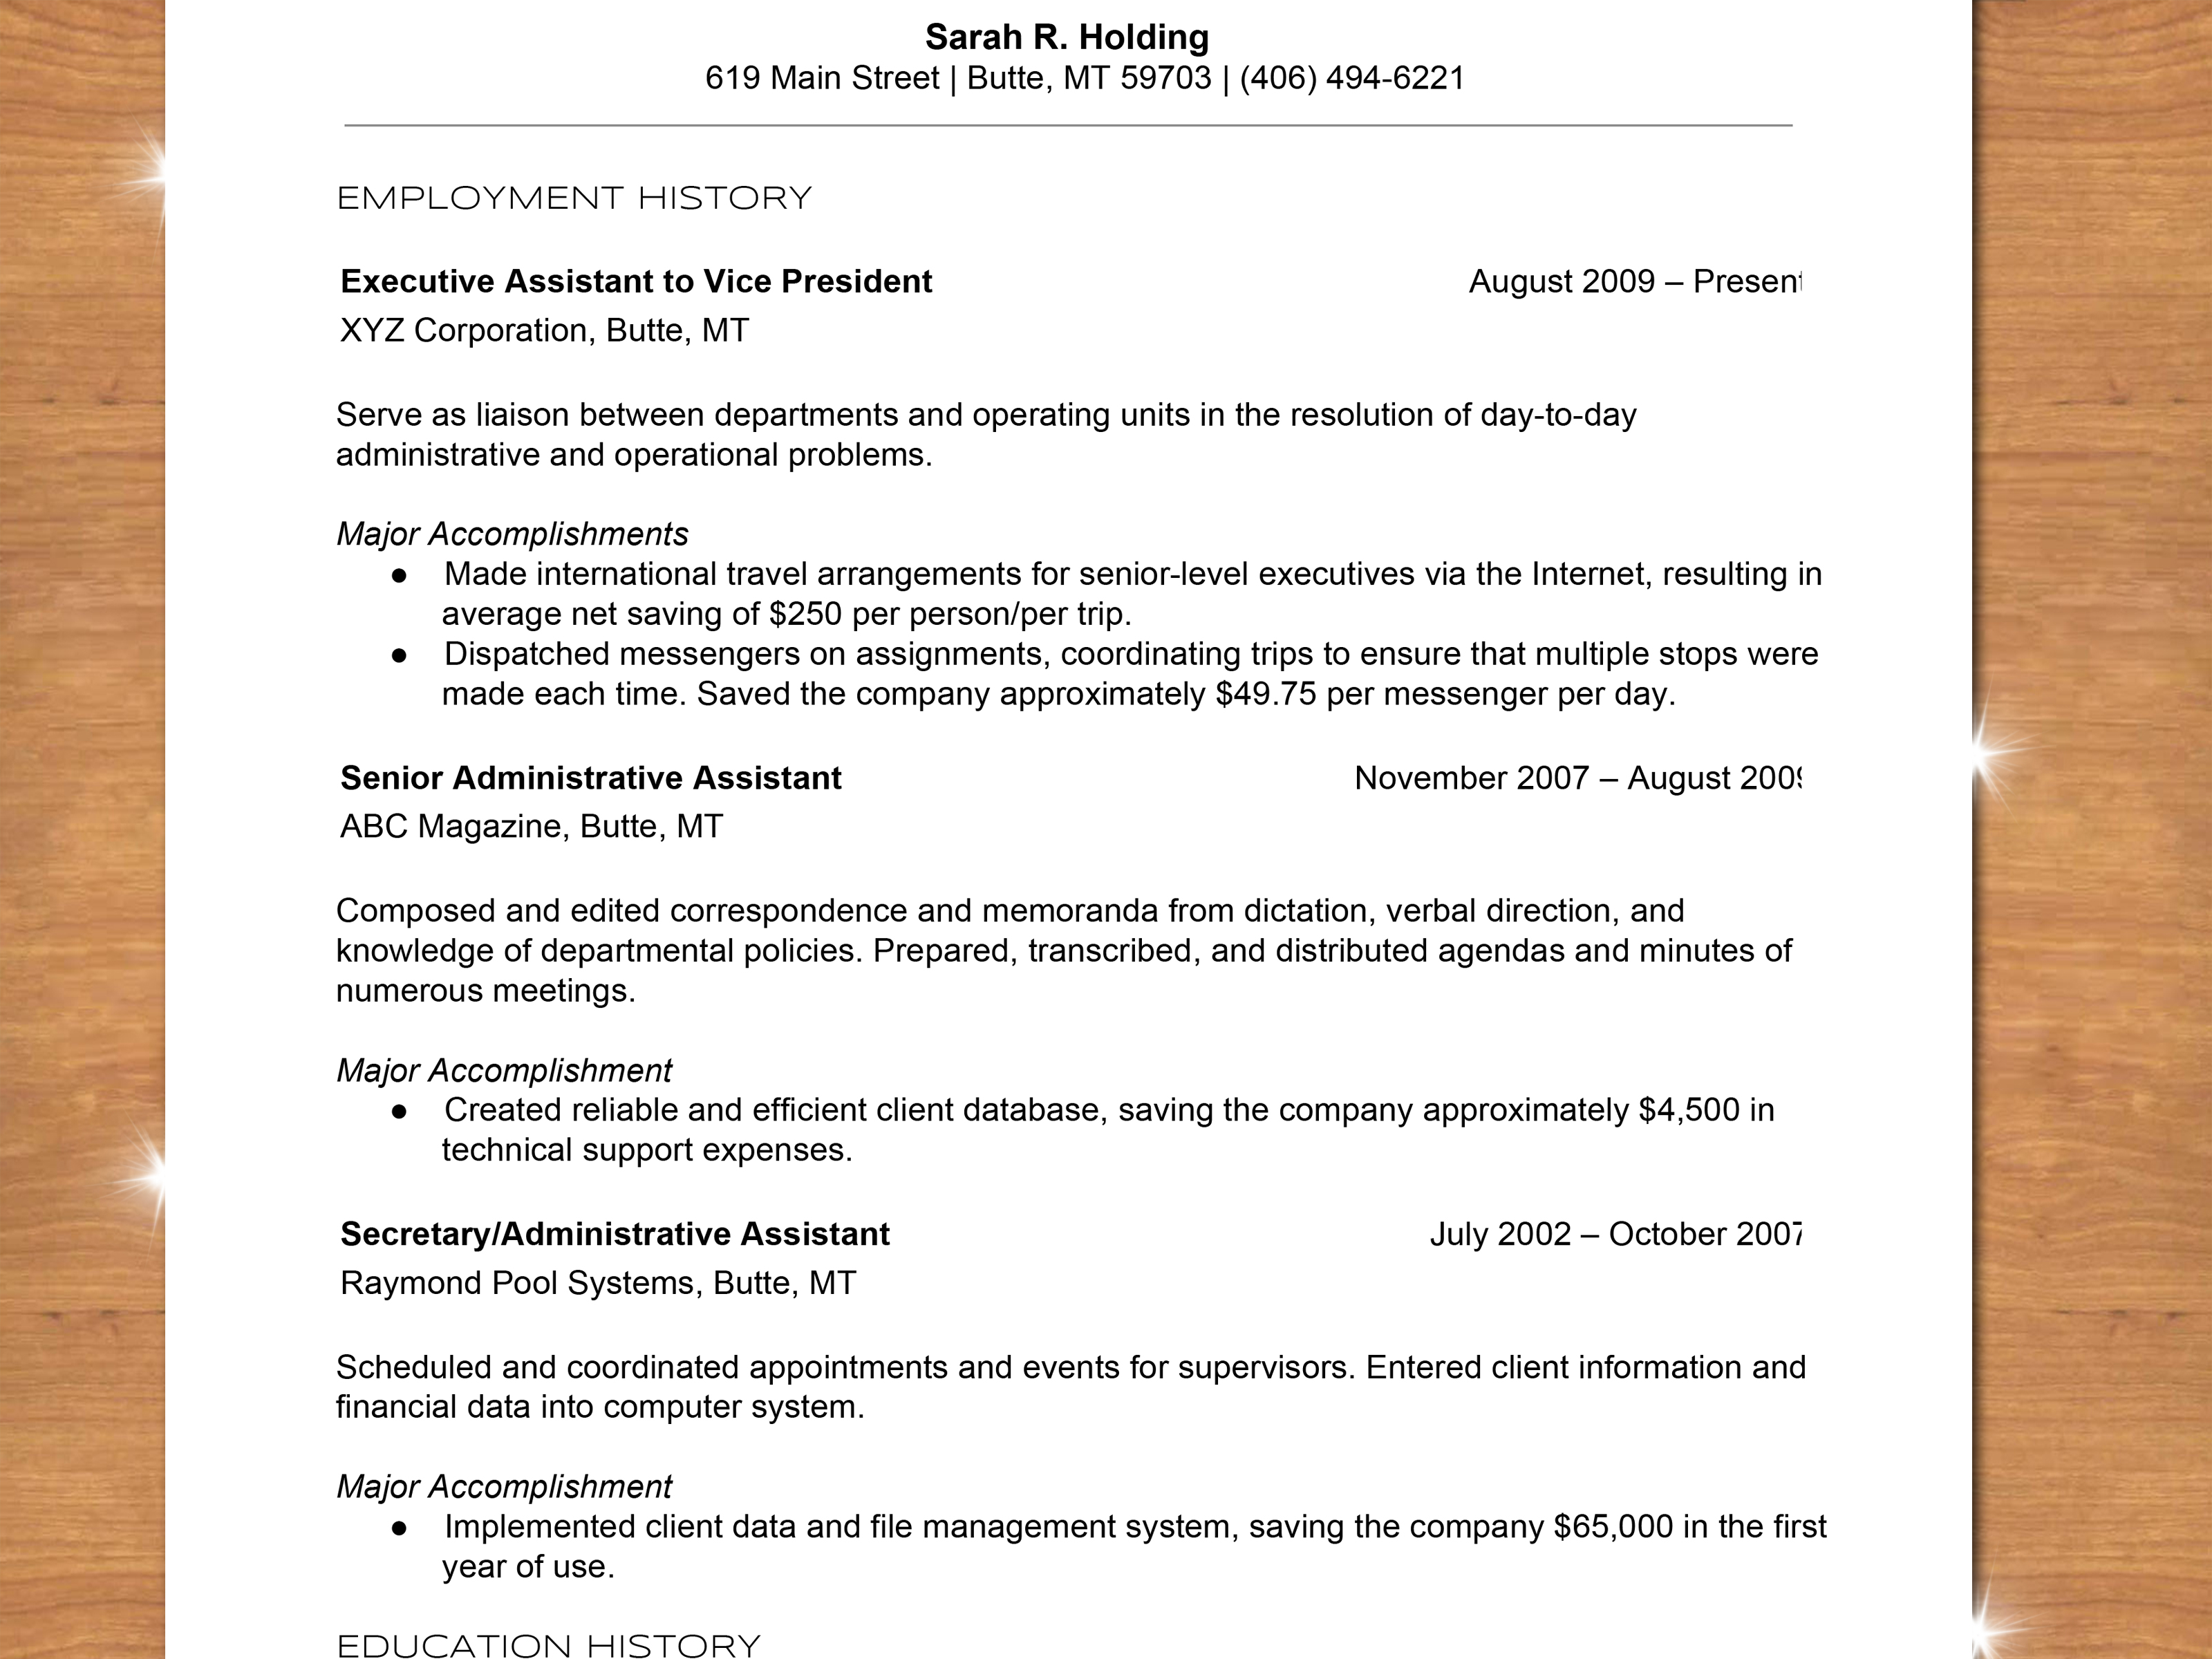 How To Type A Resume Write A Chronological Resume Step 14 how to type a resume|wikiresume.com